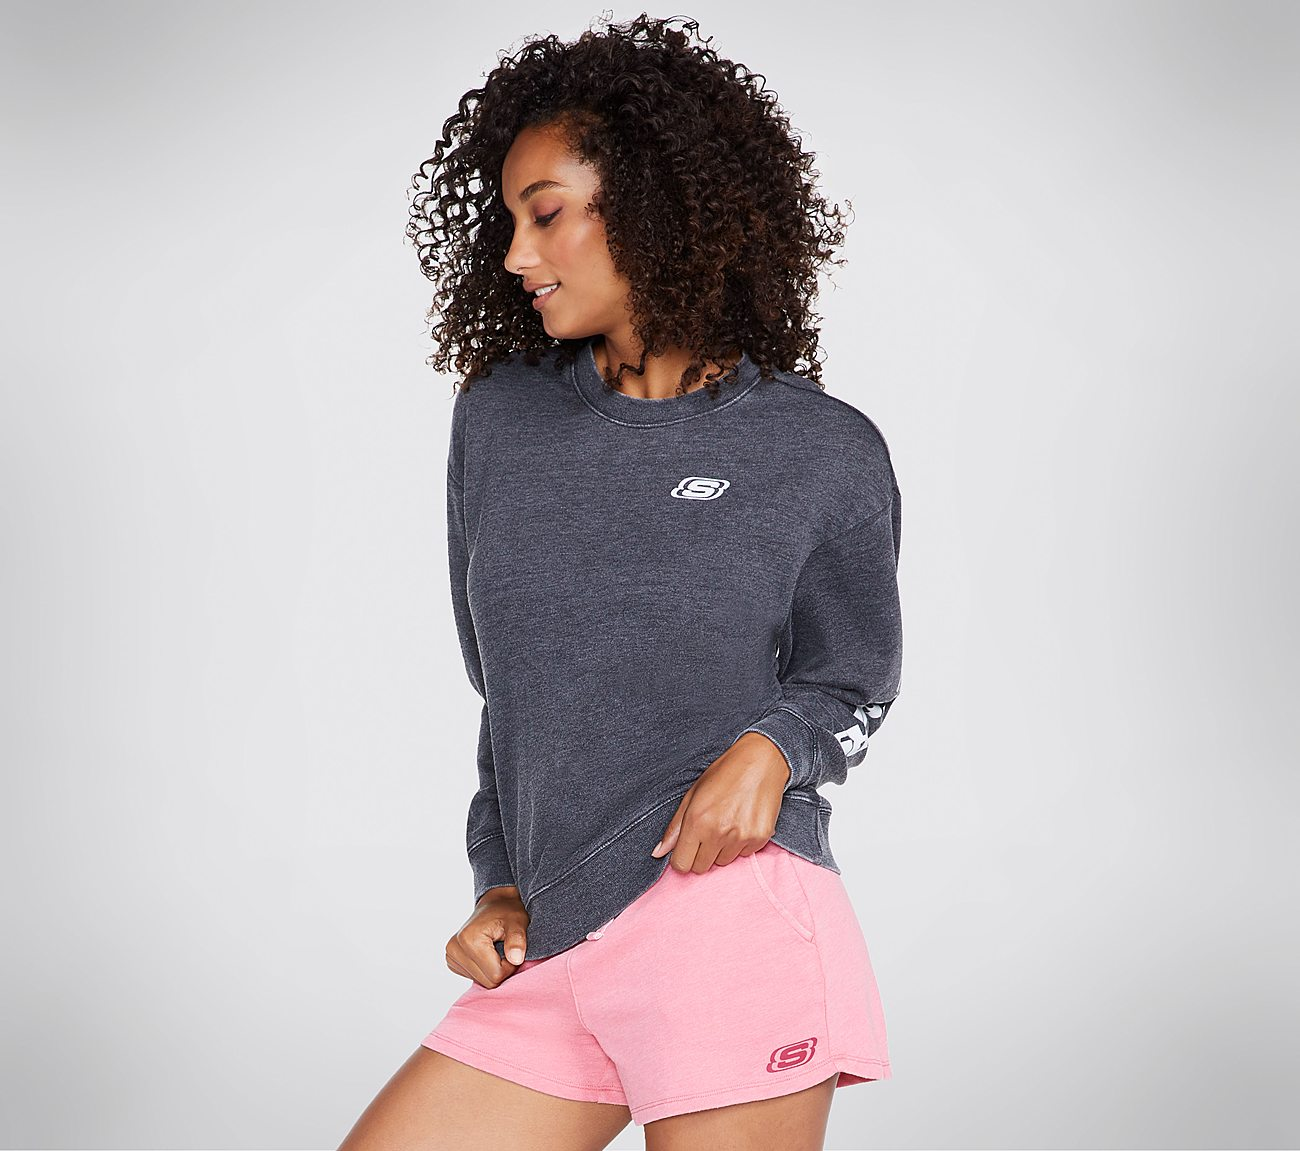 Skechers Apparel Washed Terry Sweatshirt